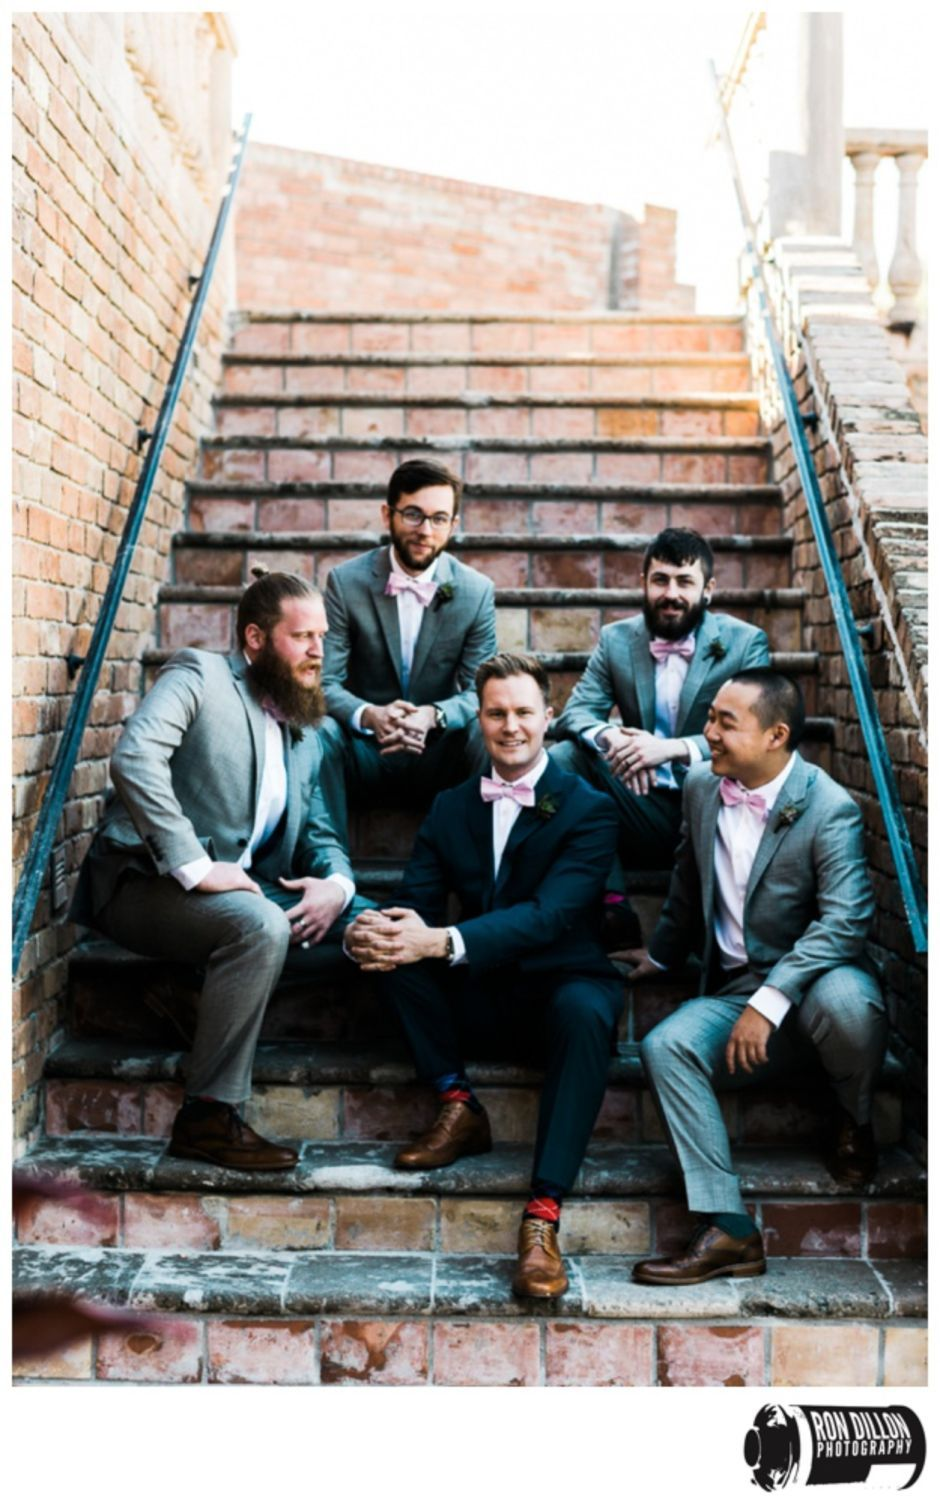 100+ Groomsmen Photos Poses Ideas You Can't Miss 51